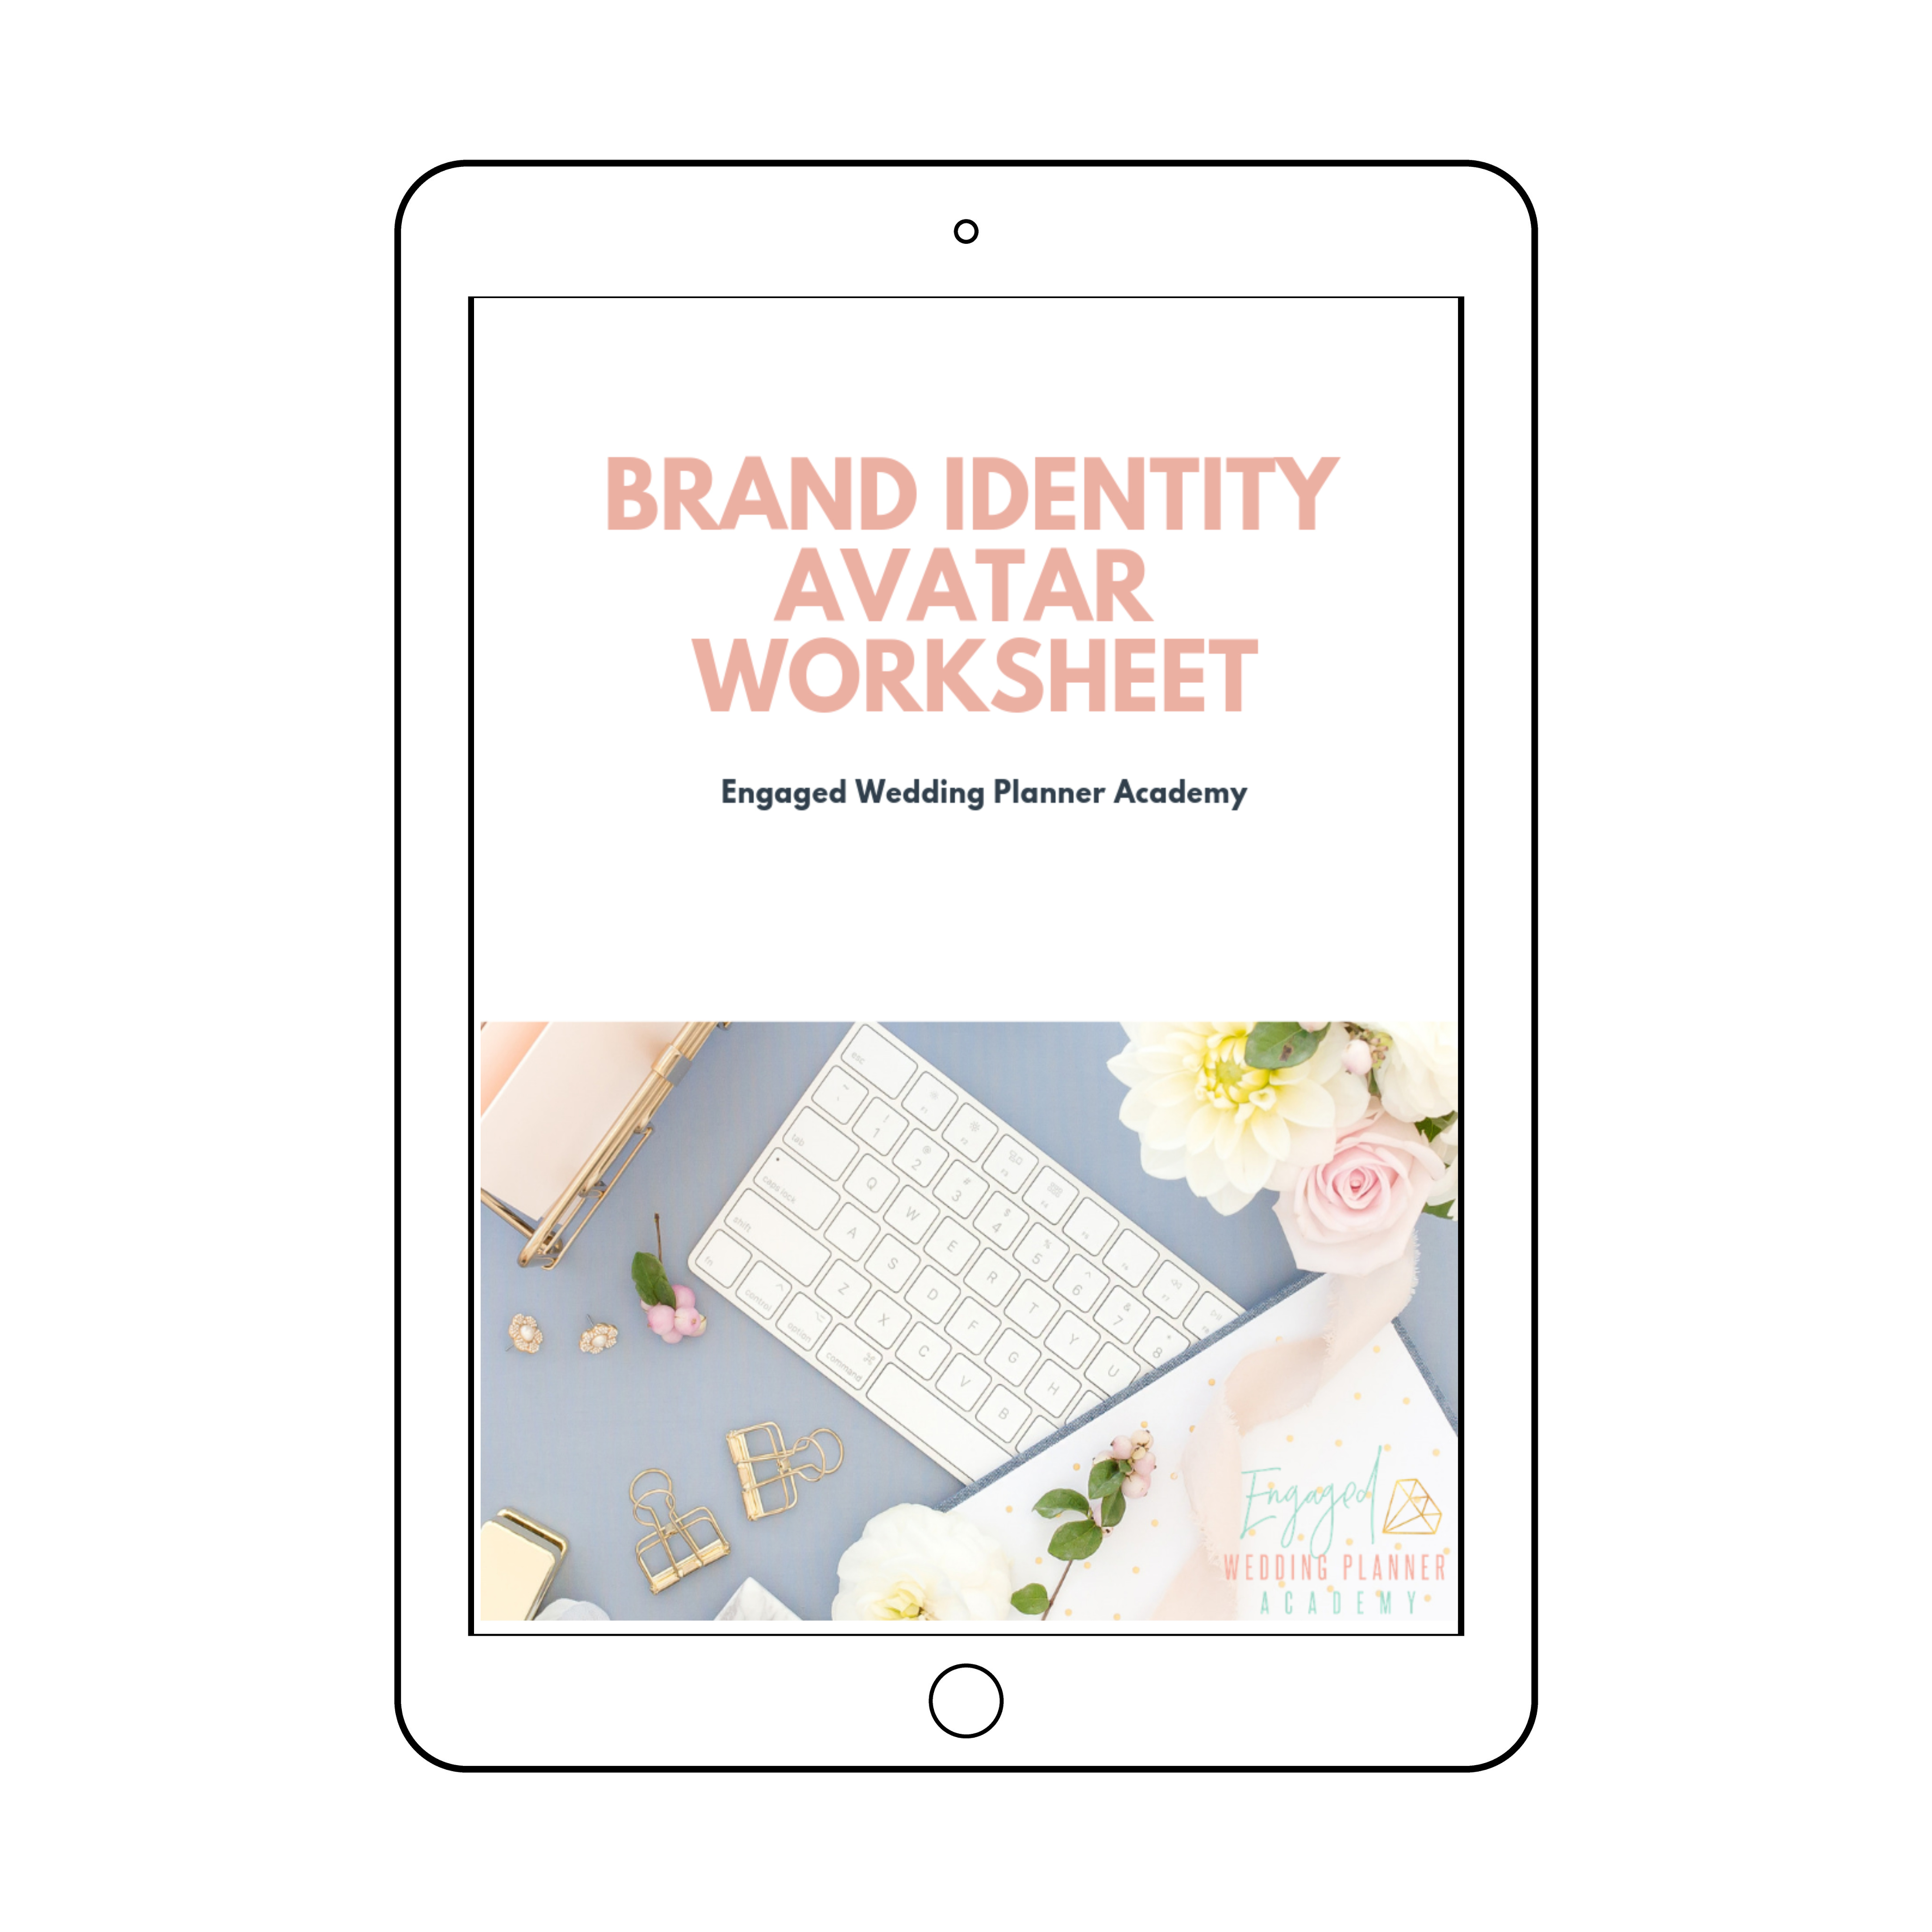 Brand Identity Avatar Worksheet